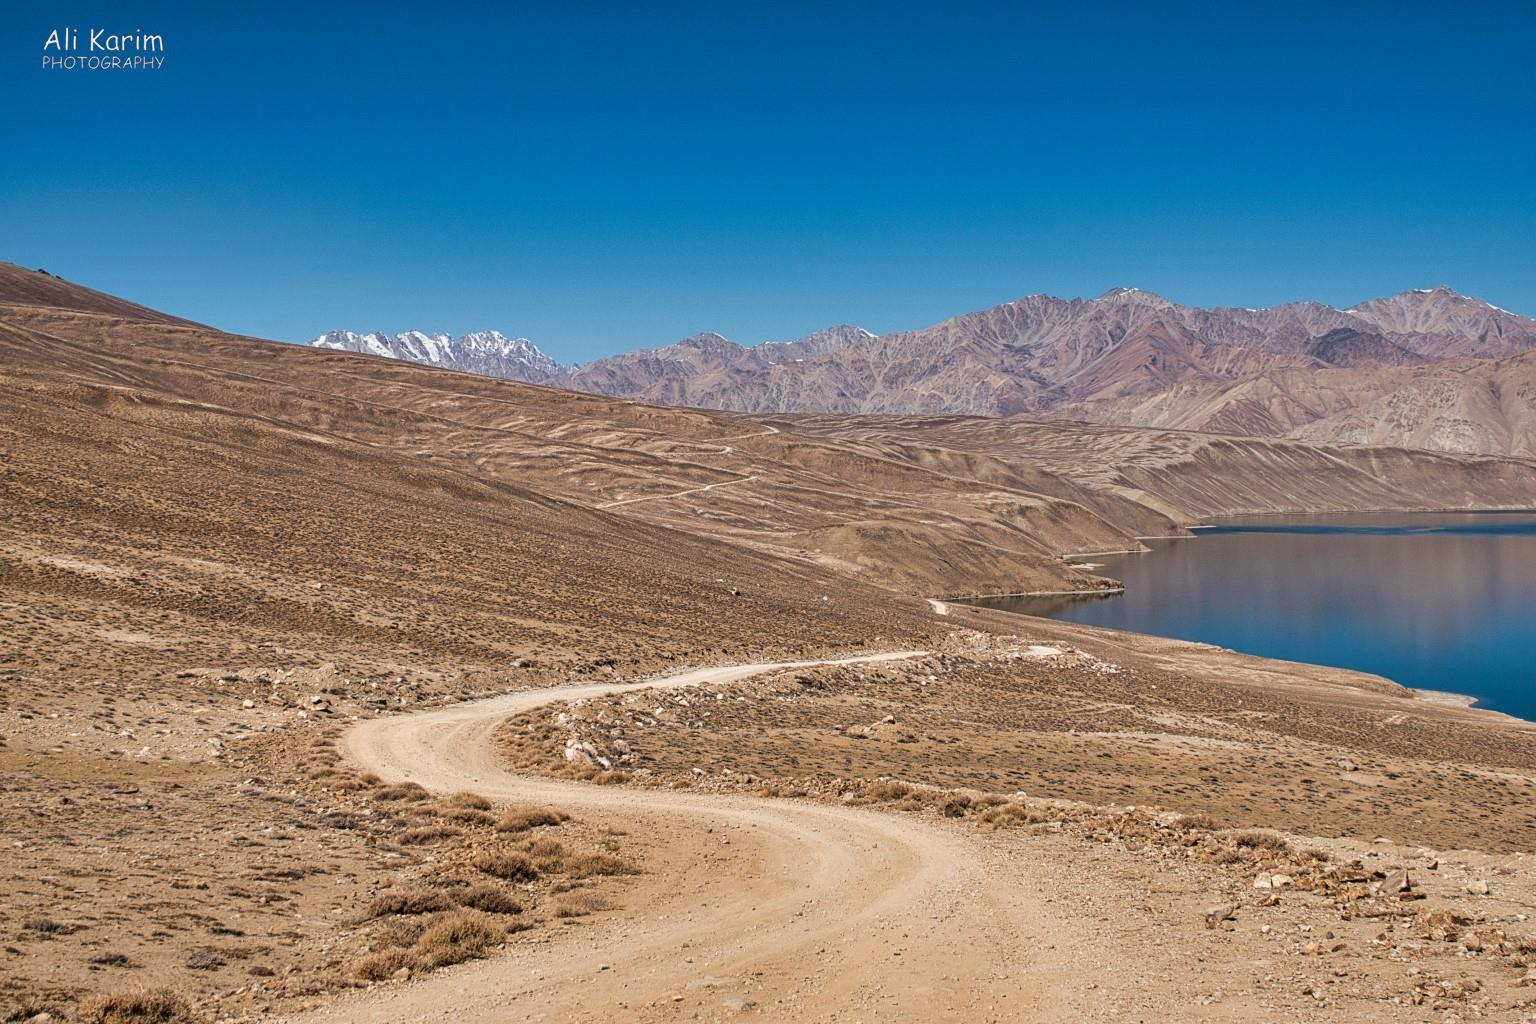 Langar, Tajikistan, Yashikul lake road and landscape. The road led to another very remote small village